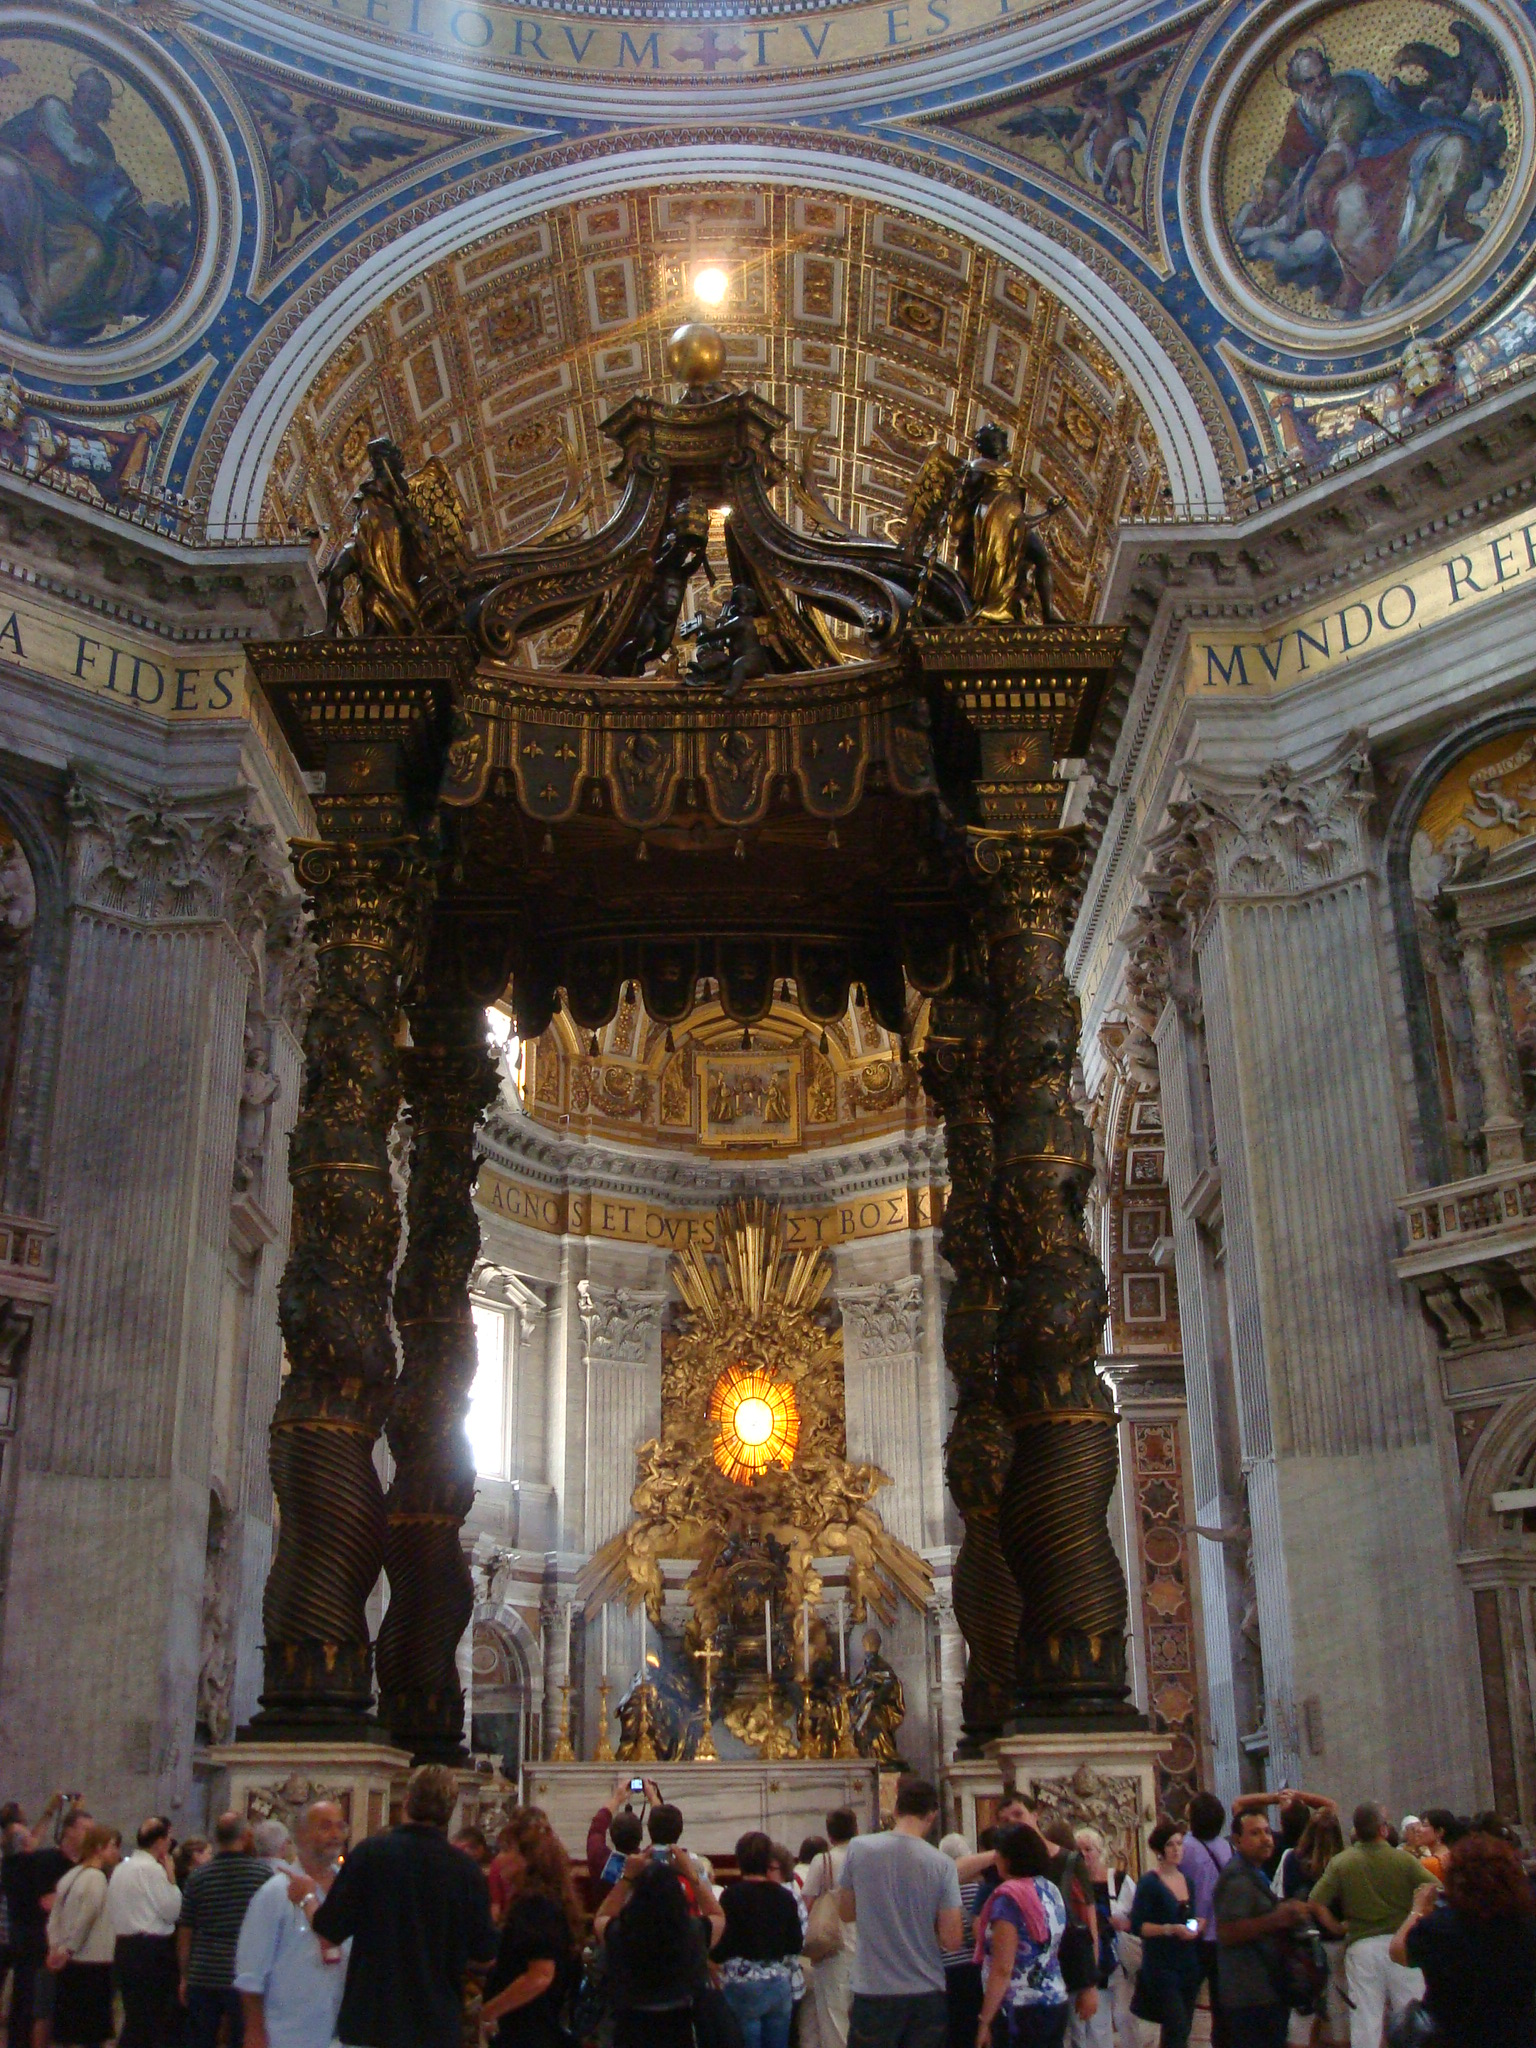 an analysis of the altarpiece of saint peter The first comprehensive examination of one of the world's greatest decorative  ensembles, this  scheme of saint peter's eleven domes and numerous  altarpieces.